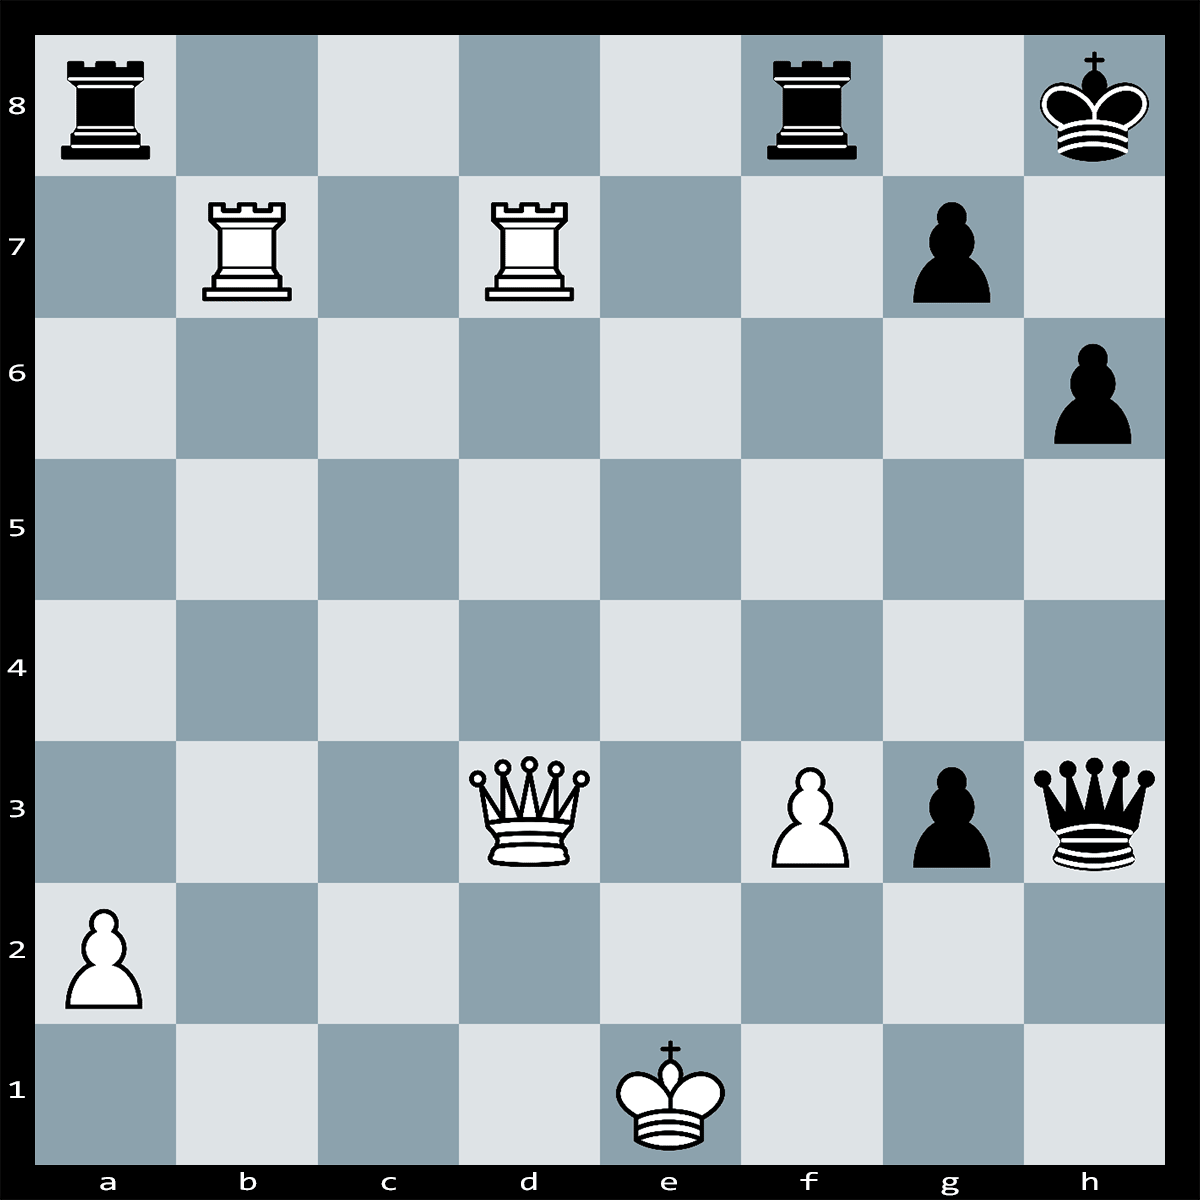 Mate in 4 Moves white to play - Chess Puzzle #20